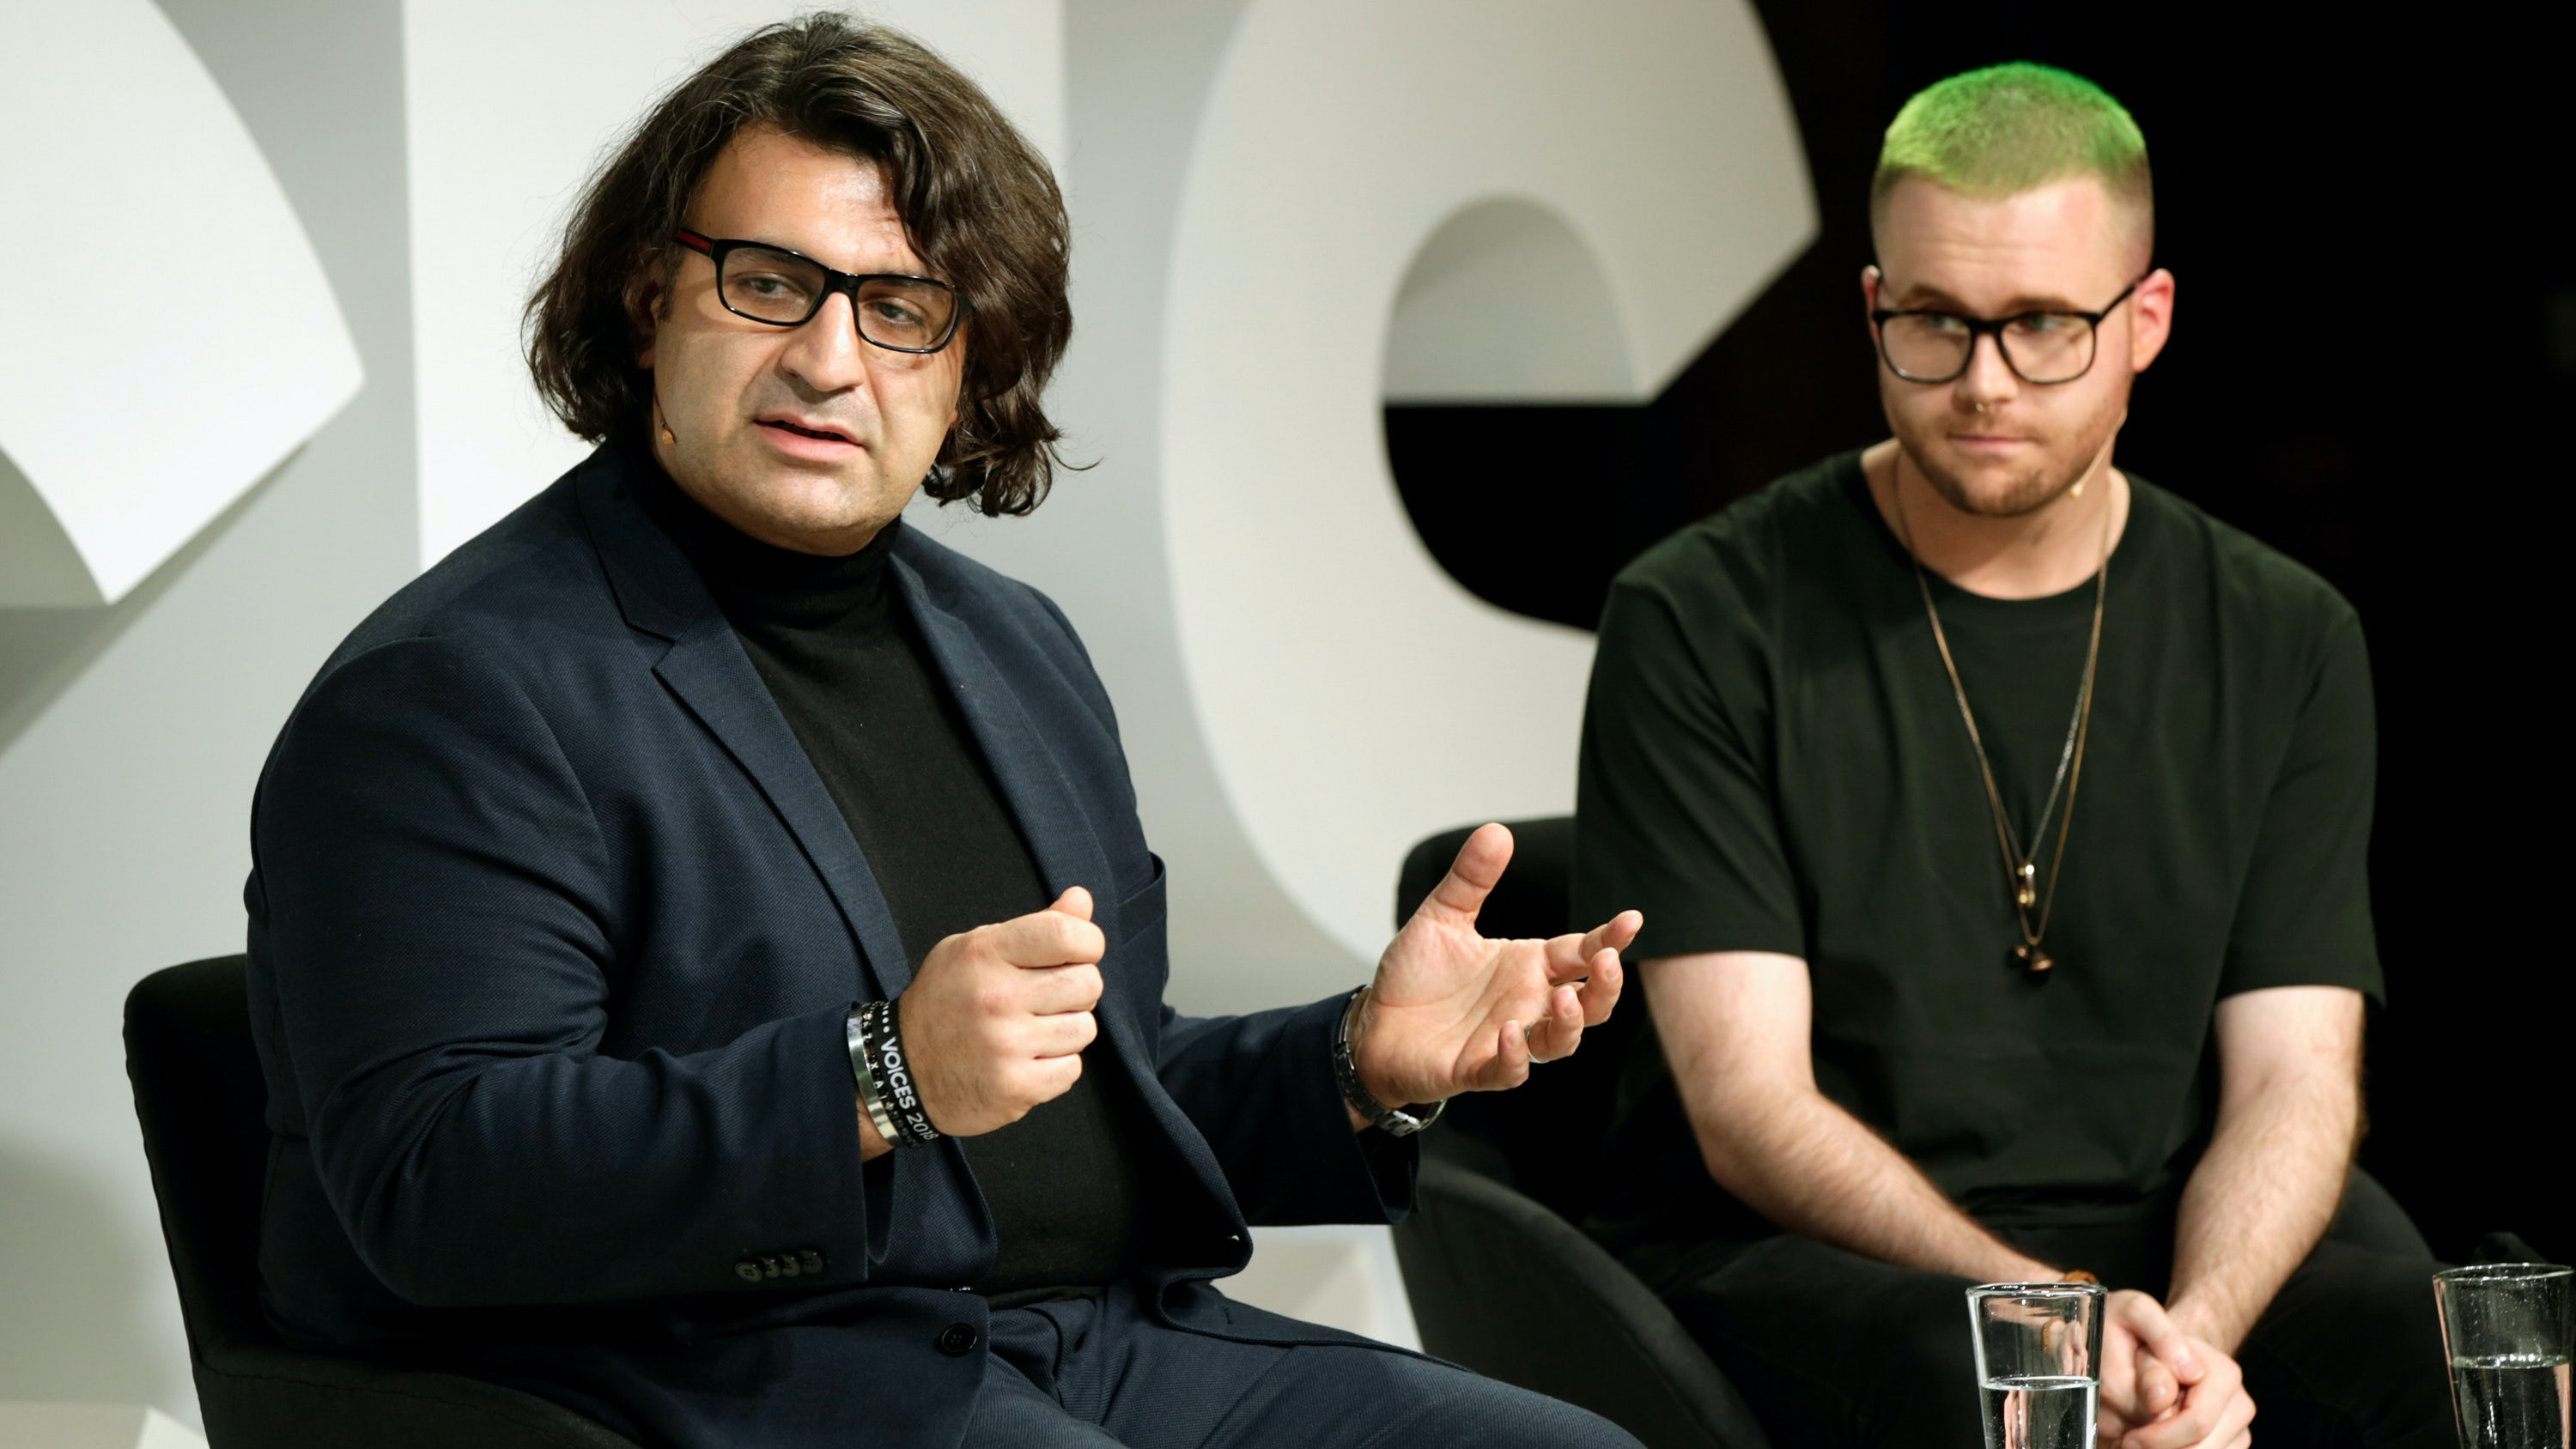 Arti Zeighami and Christopher Wylie speak on stage during #BoFVOICES